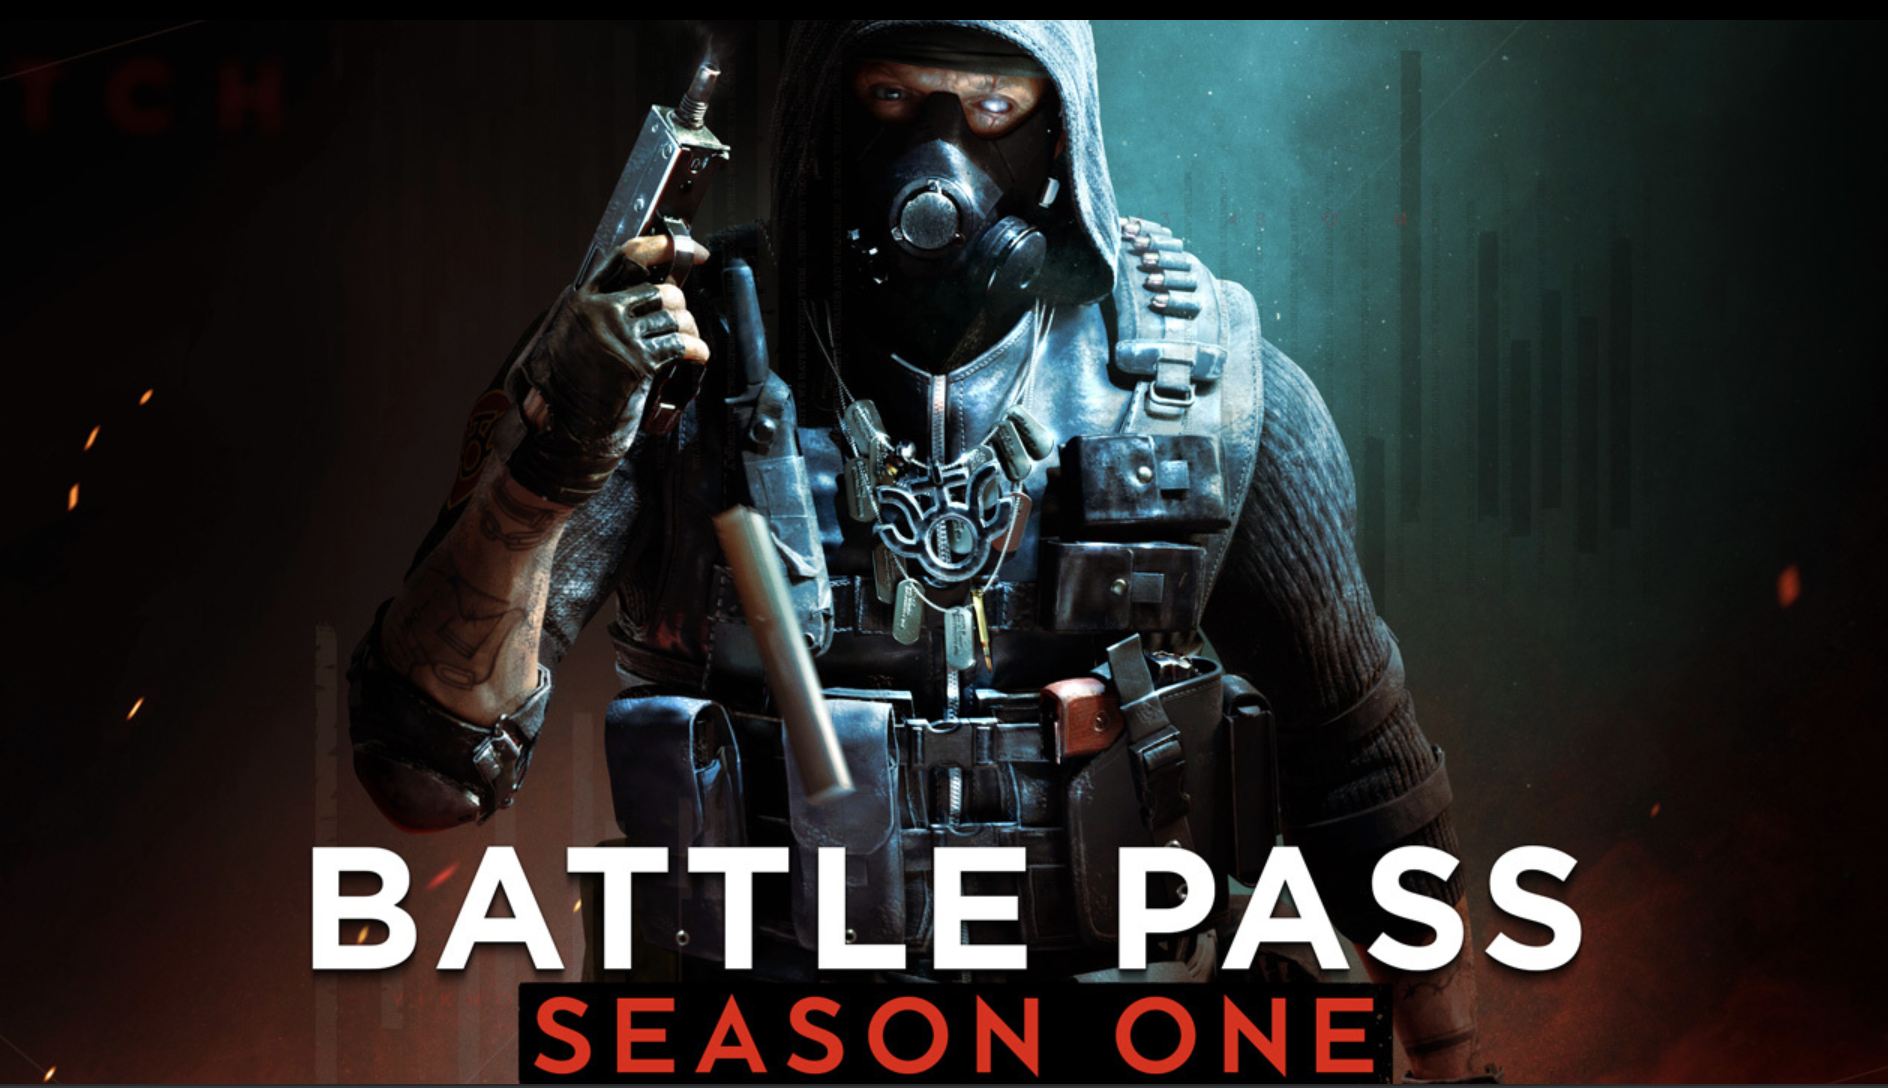 'Call of Duty: Black Ops Cold War' Season 1 Battle Pass Details